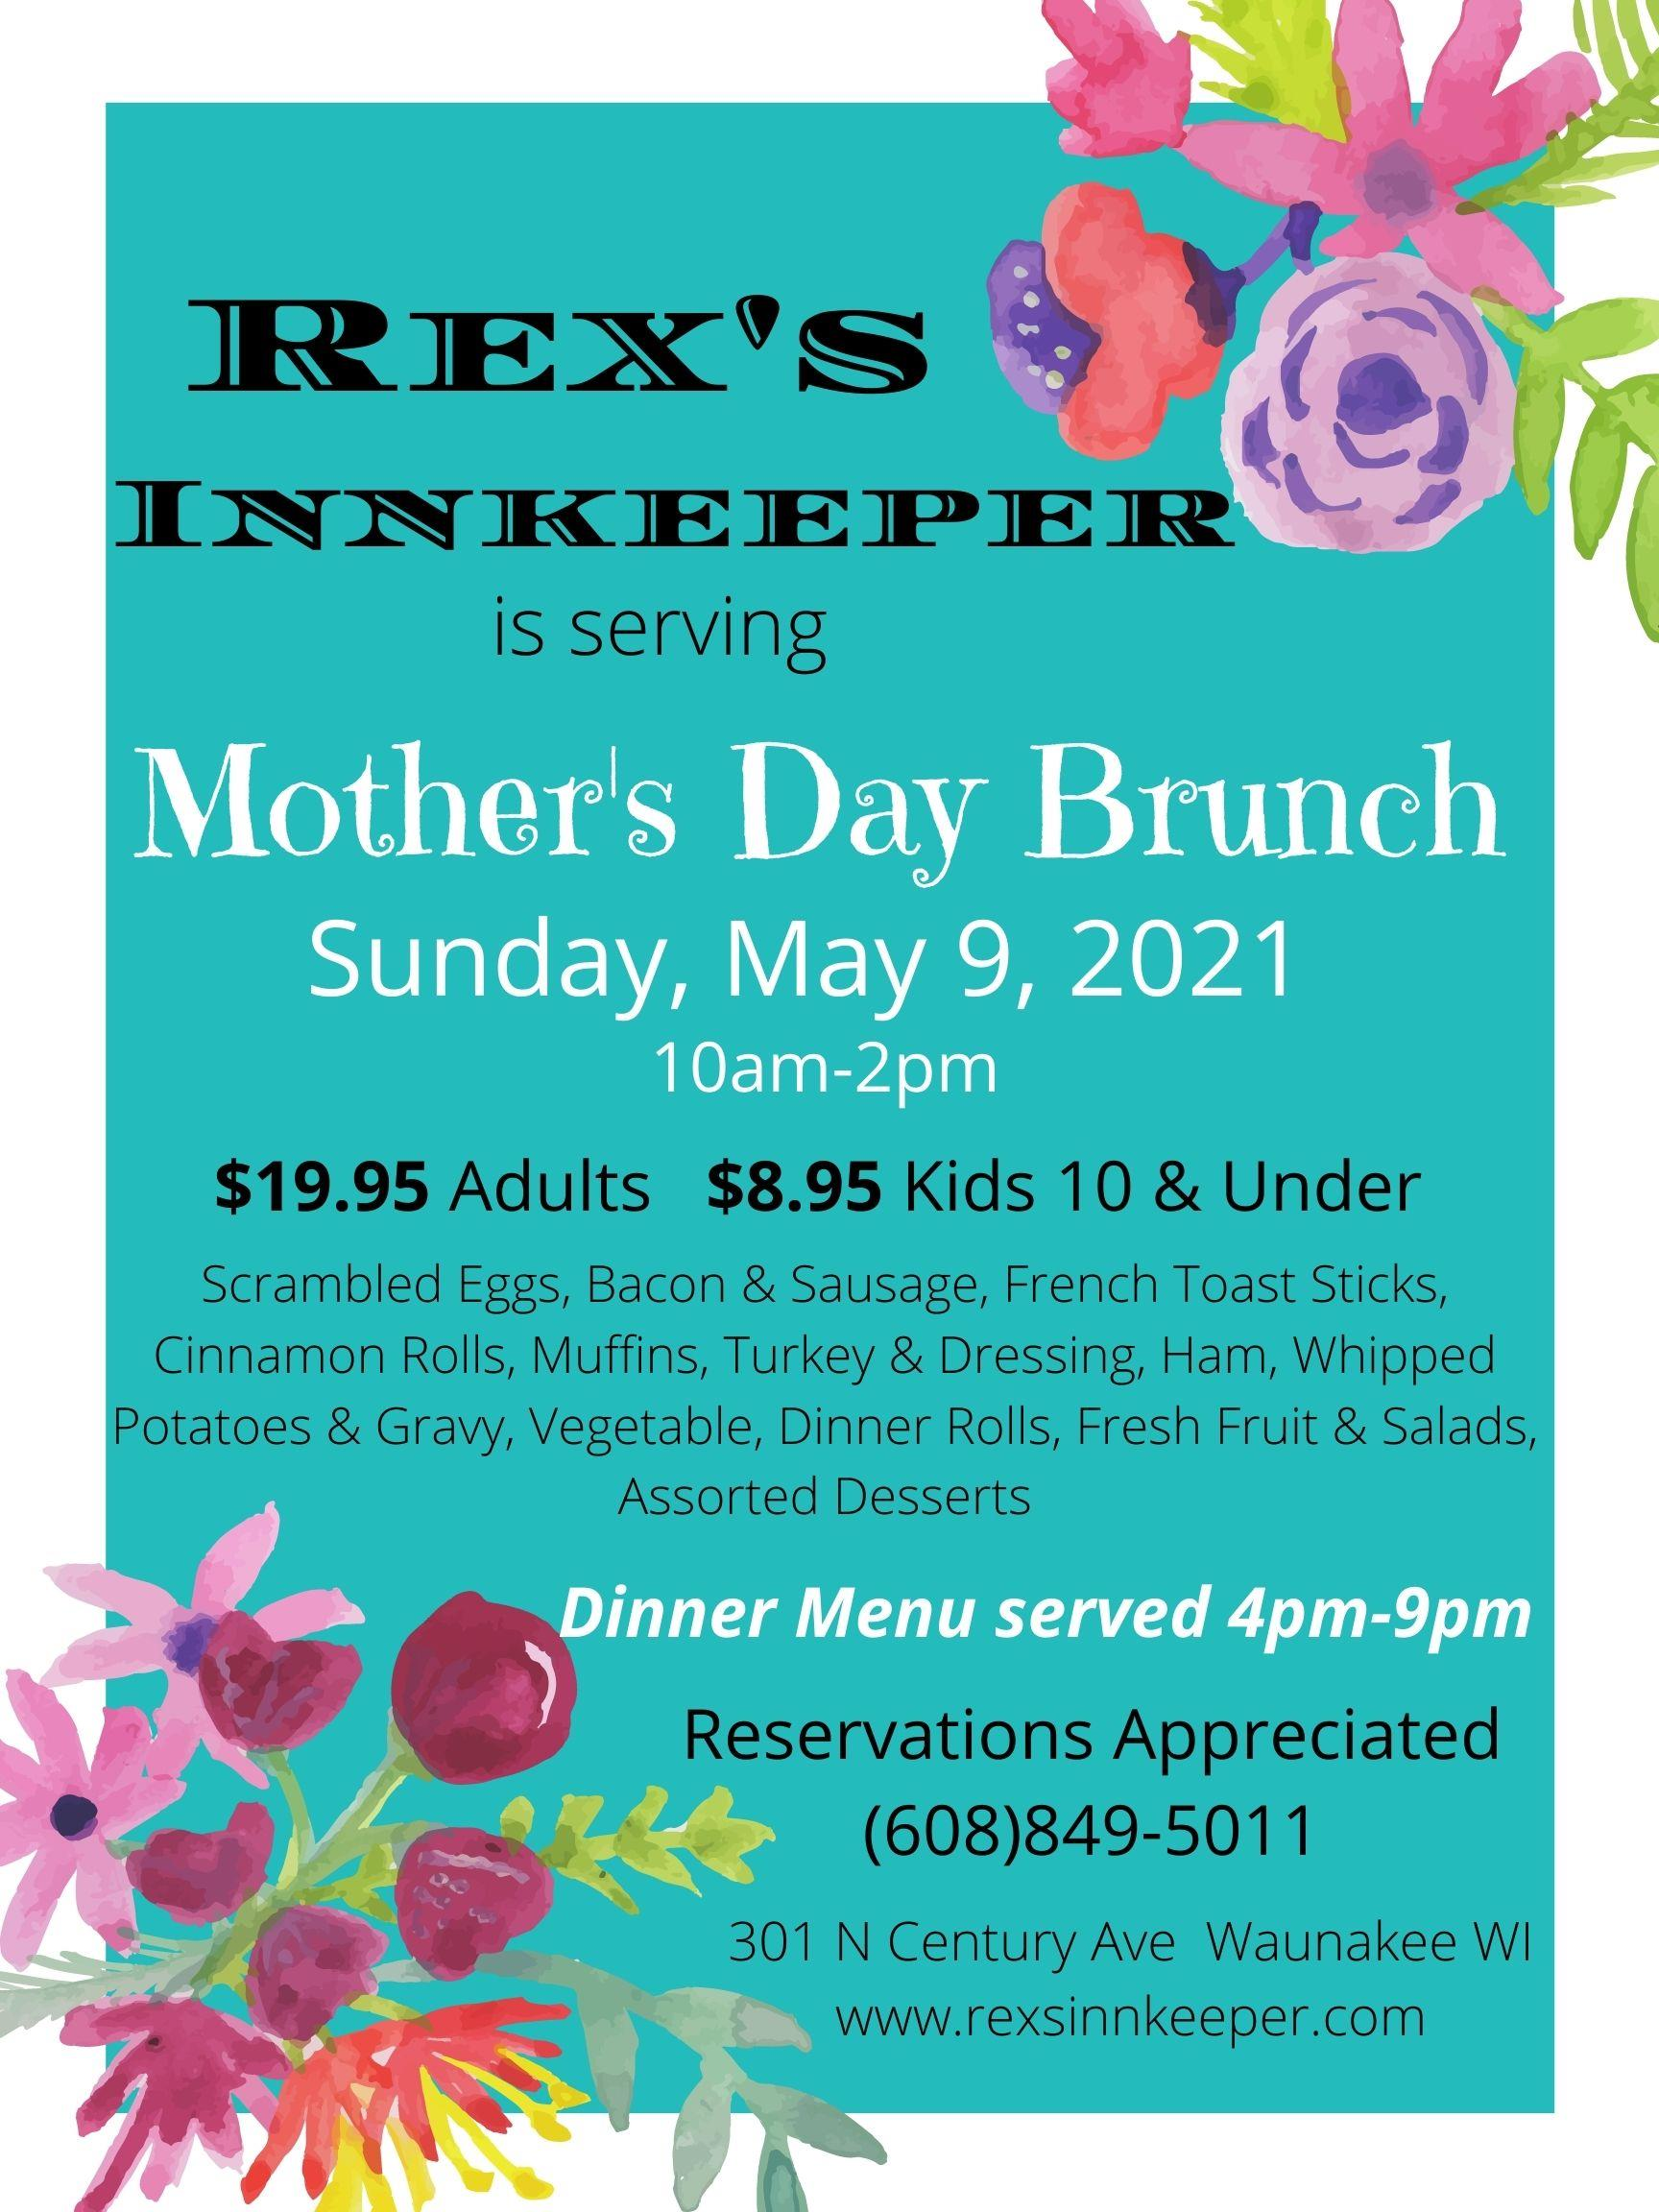 rex's innkeeper is serving Mother's Day brunch. Sunday, May 9th, 2021. 10 am - 2 pm. $19.95 adults, $8.95 kids 10 and under. Scrambled eggs, bacon and sausage, french toast sticks, cinnamon rolls, muffins, turket & dressing, ham, whipped potatoes and gravy, vegetable, dinner rolls, fresh fruit and salads, assorted desserts. Dinner mneu served 4pm - 9pm. reservations appreciated. 608-849-5011. 301 N century ave Waunakee WI.